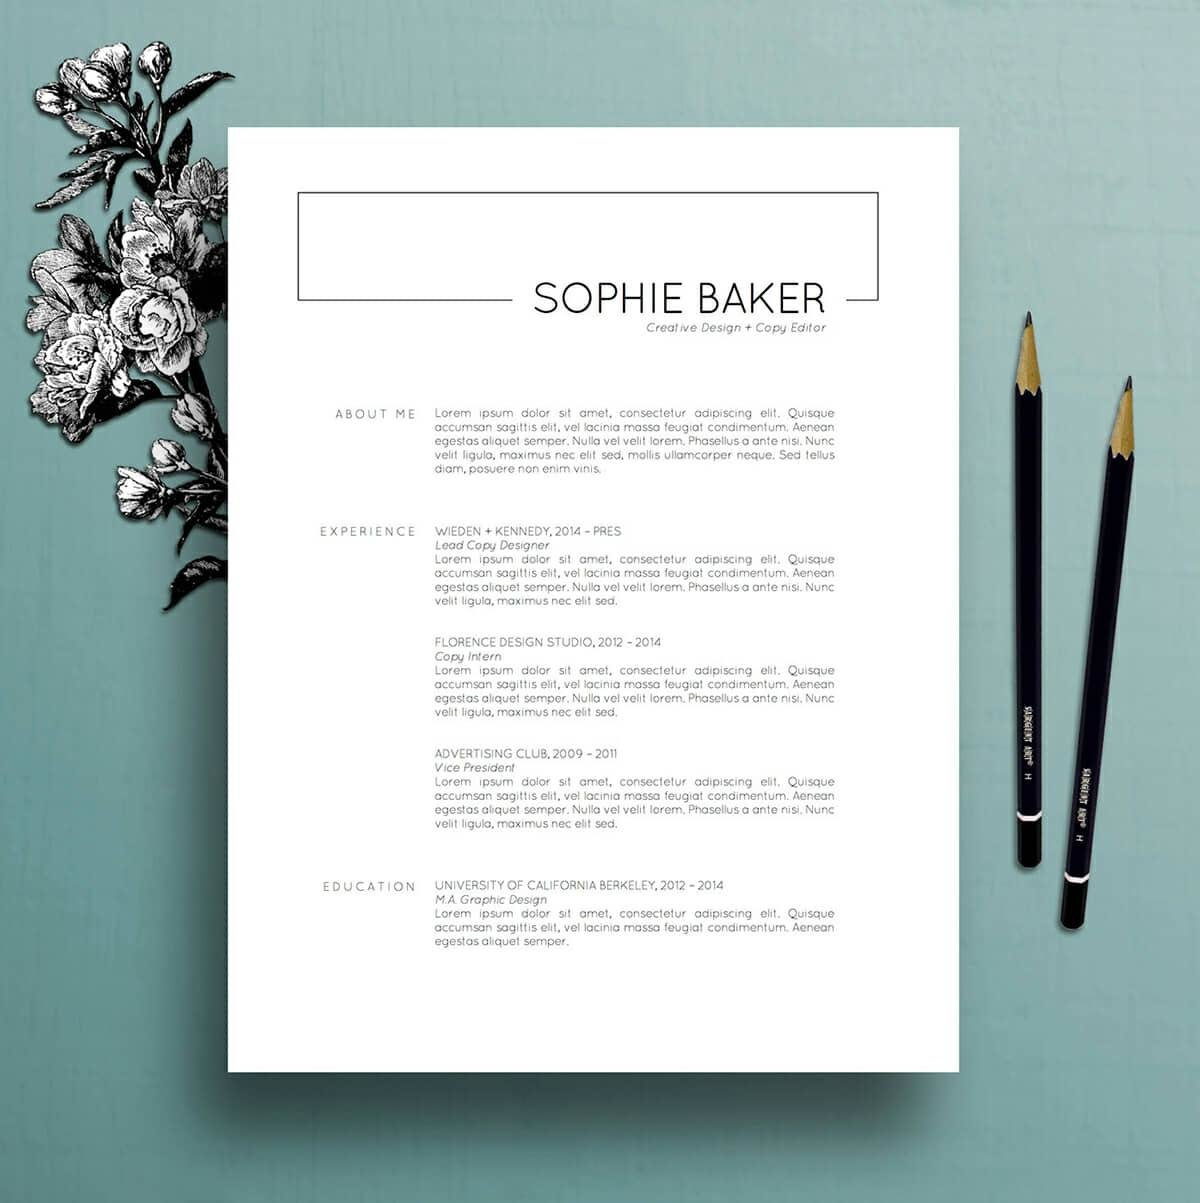 basic job resume template with large header